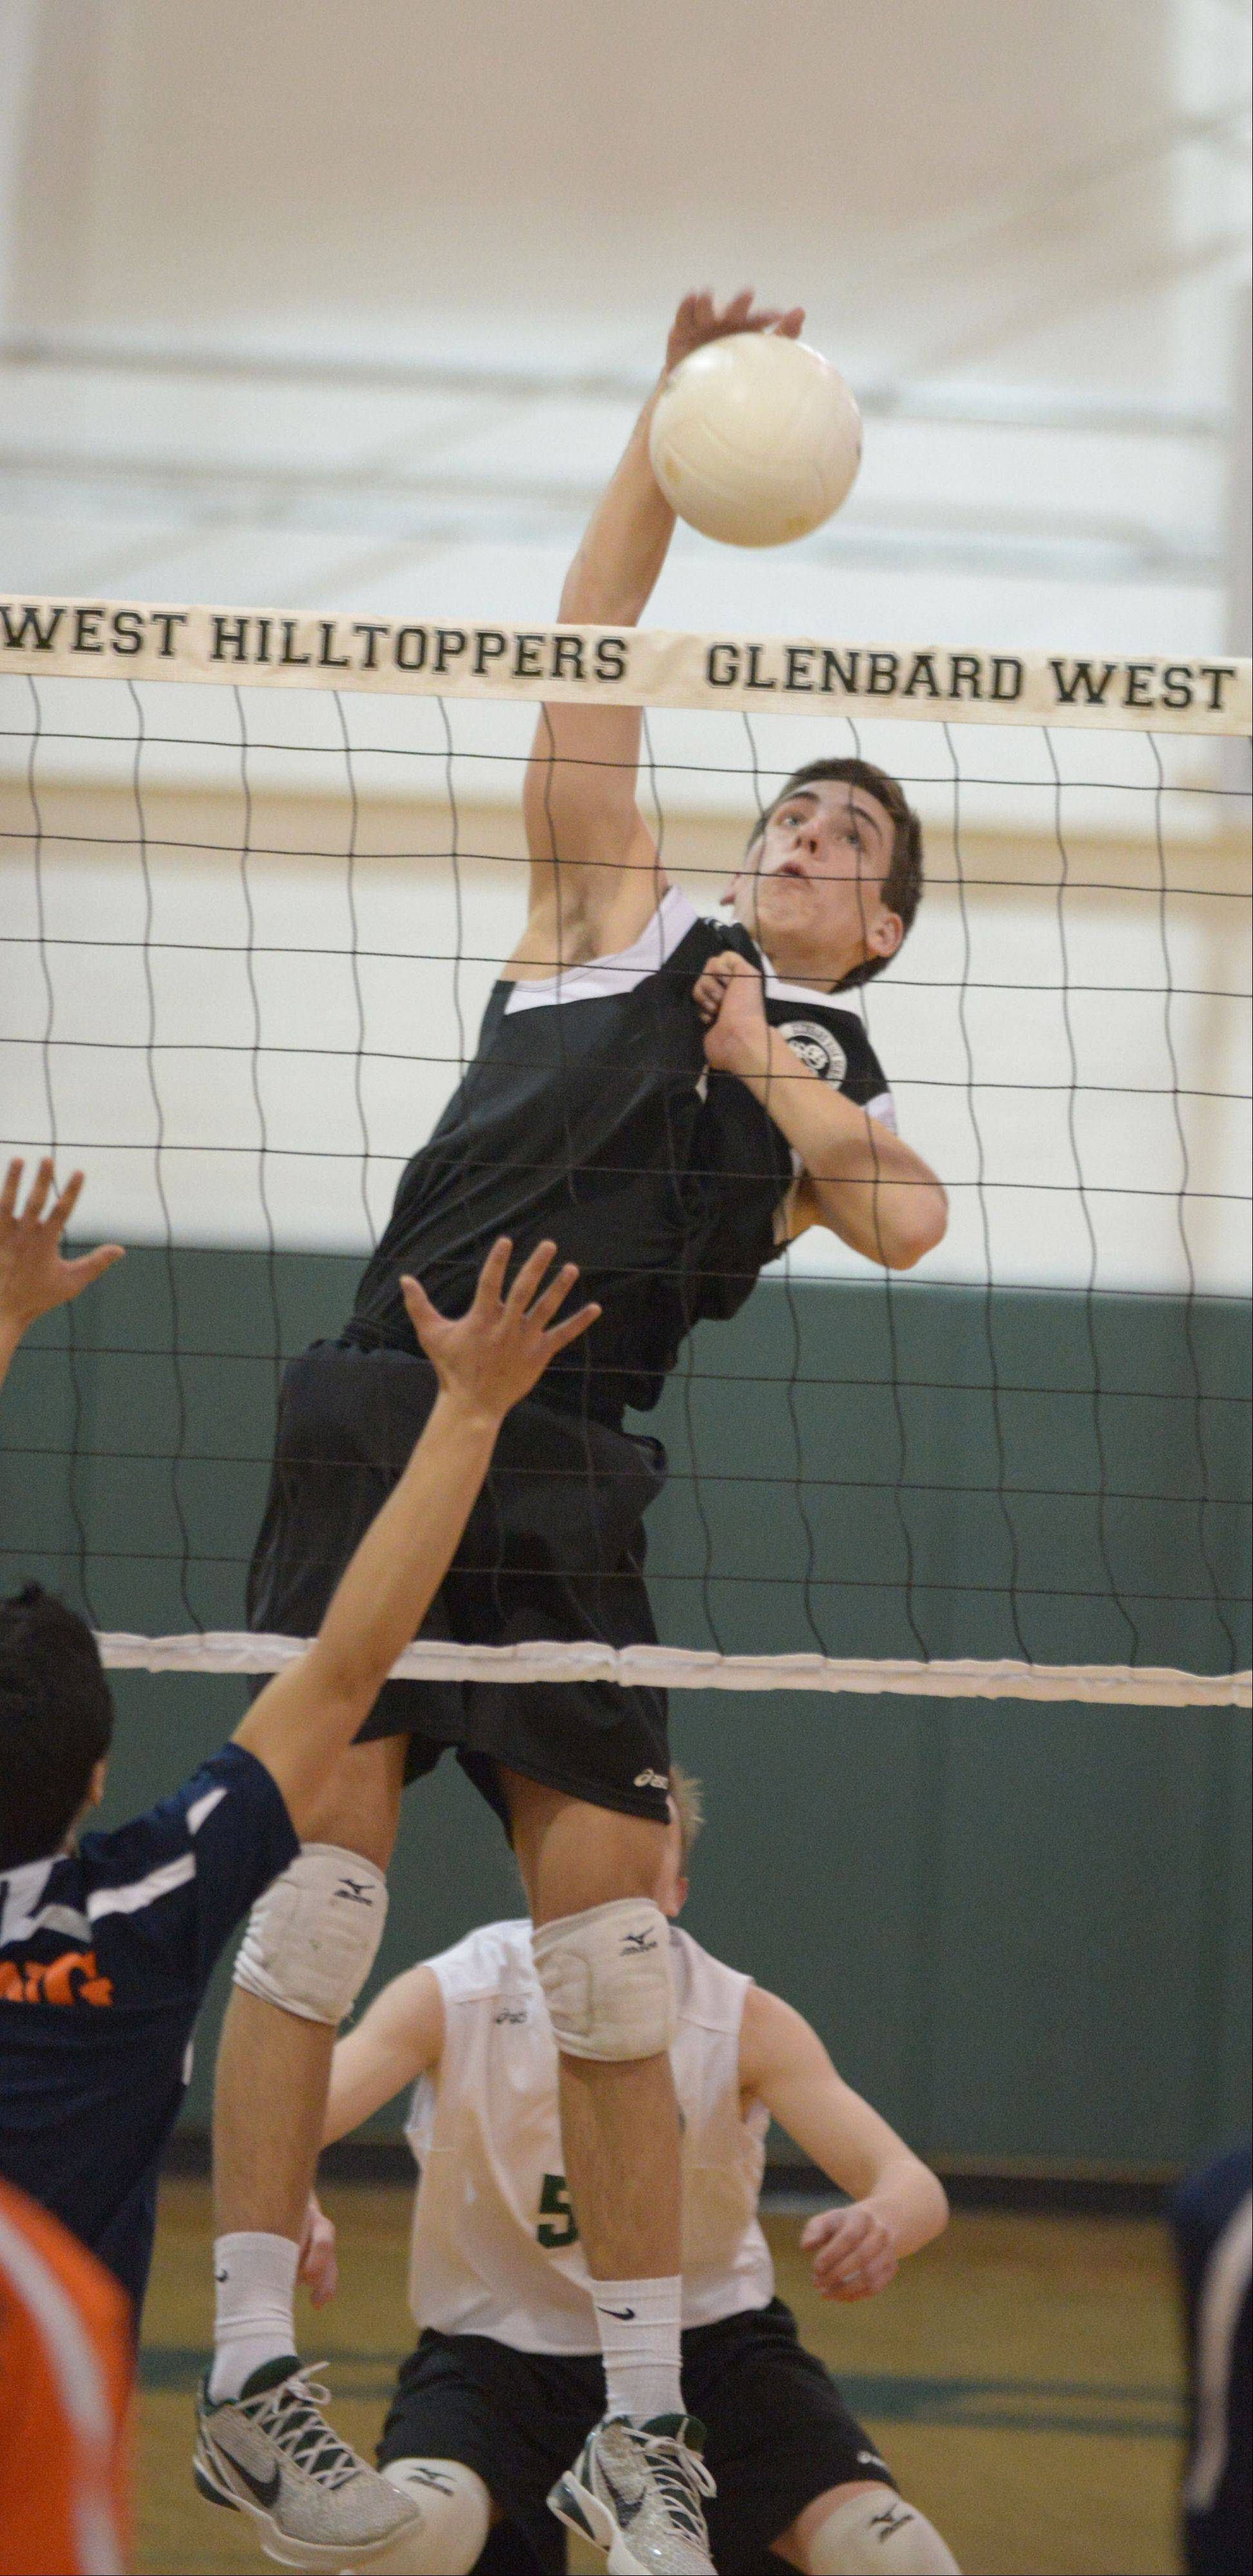 Sean Dedmond of Glenbard West goes up for a spike during the Whitney Young at Glenbard West boys volleyball game Thursday.